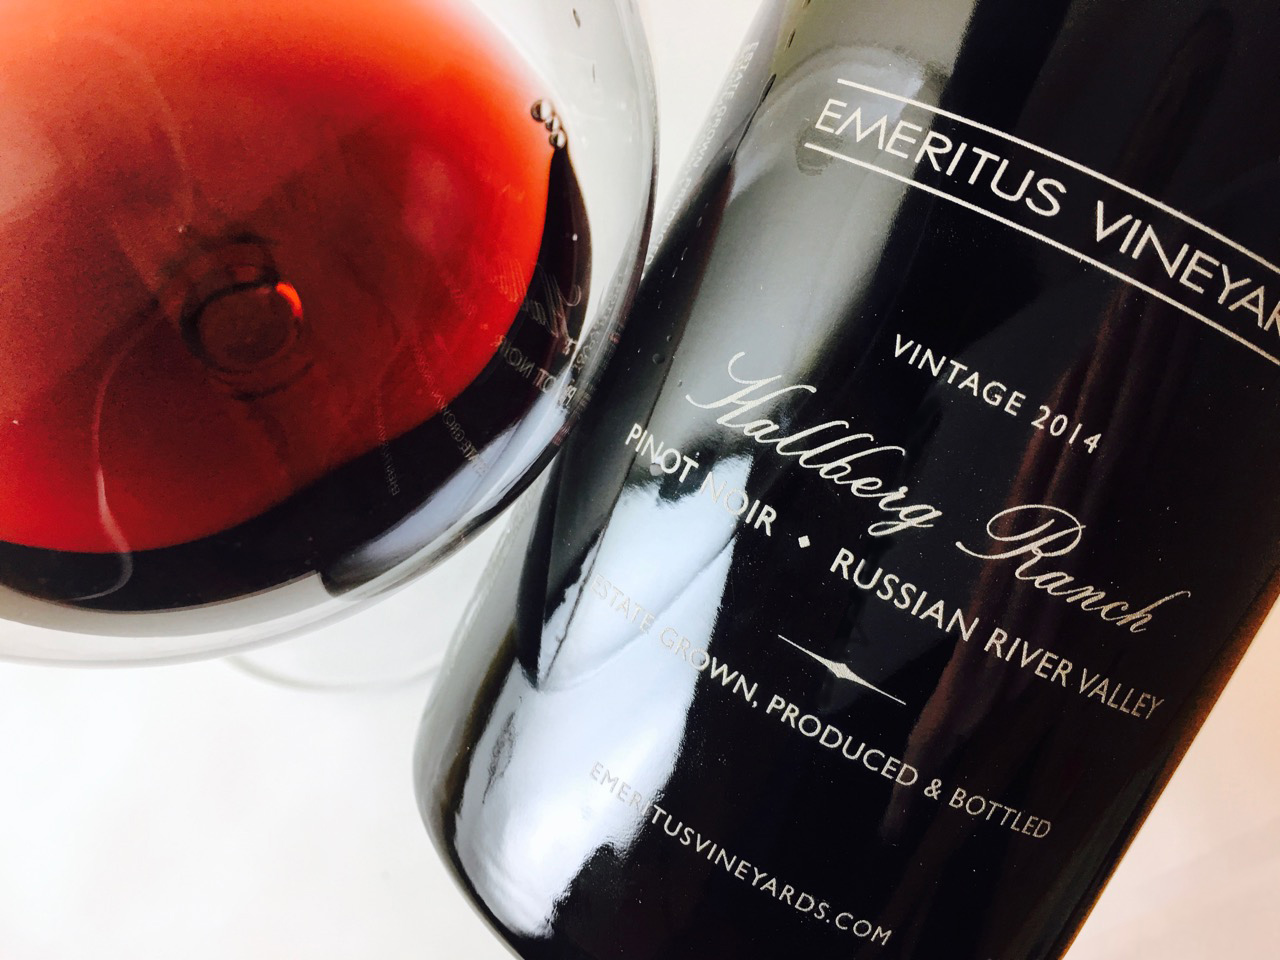 2014 Emeritus Pinot Noir Hallberg Ranch Russian River Valley